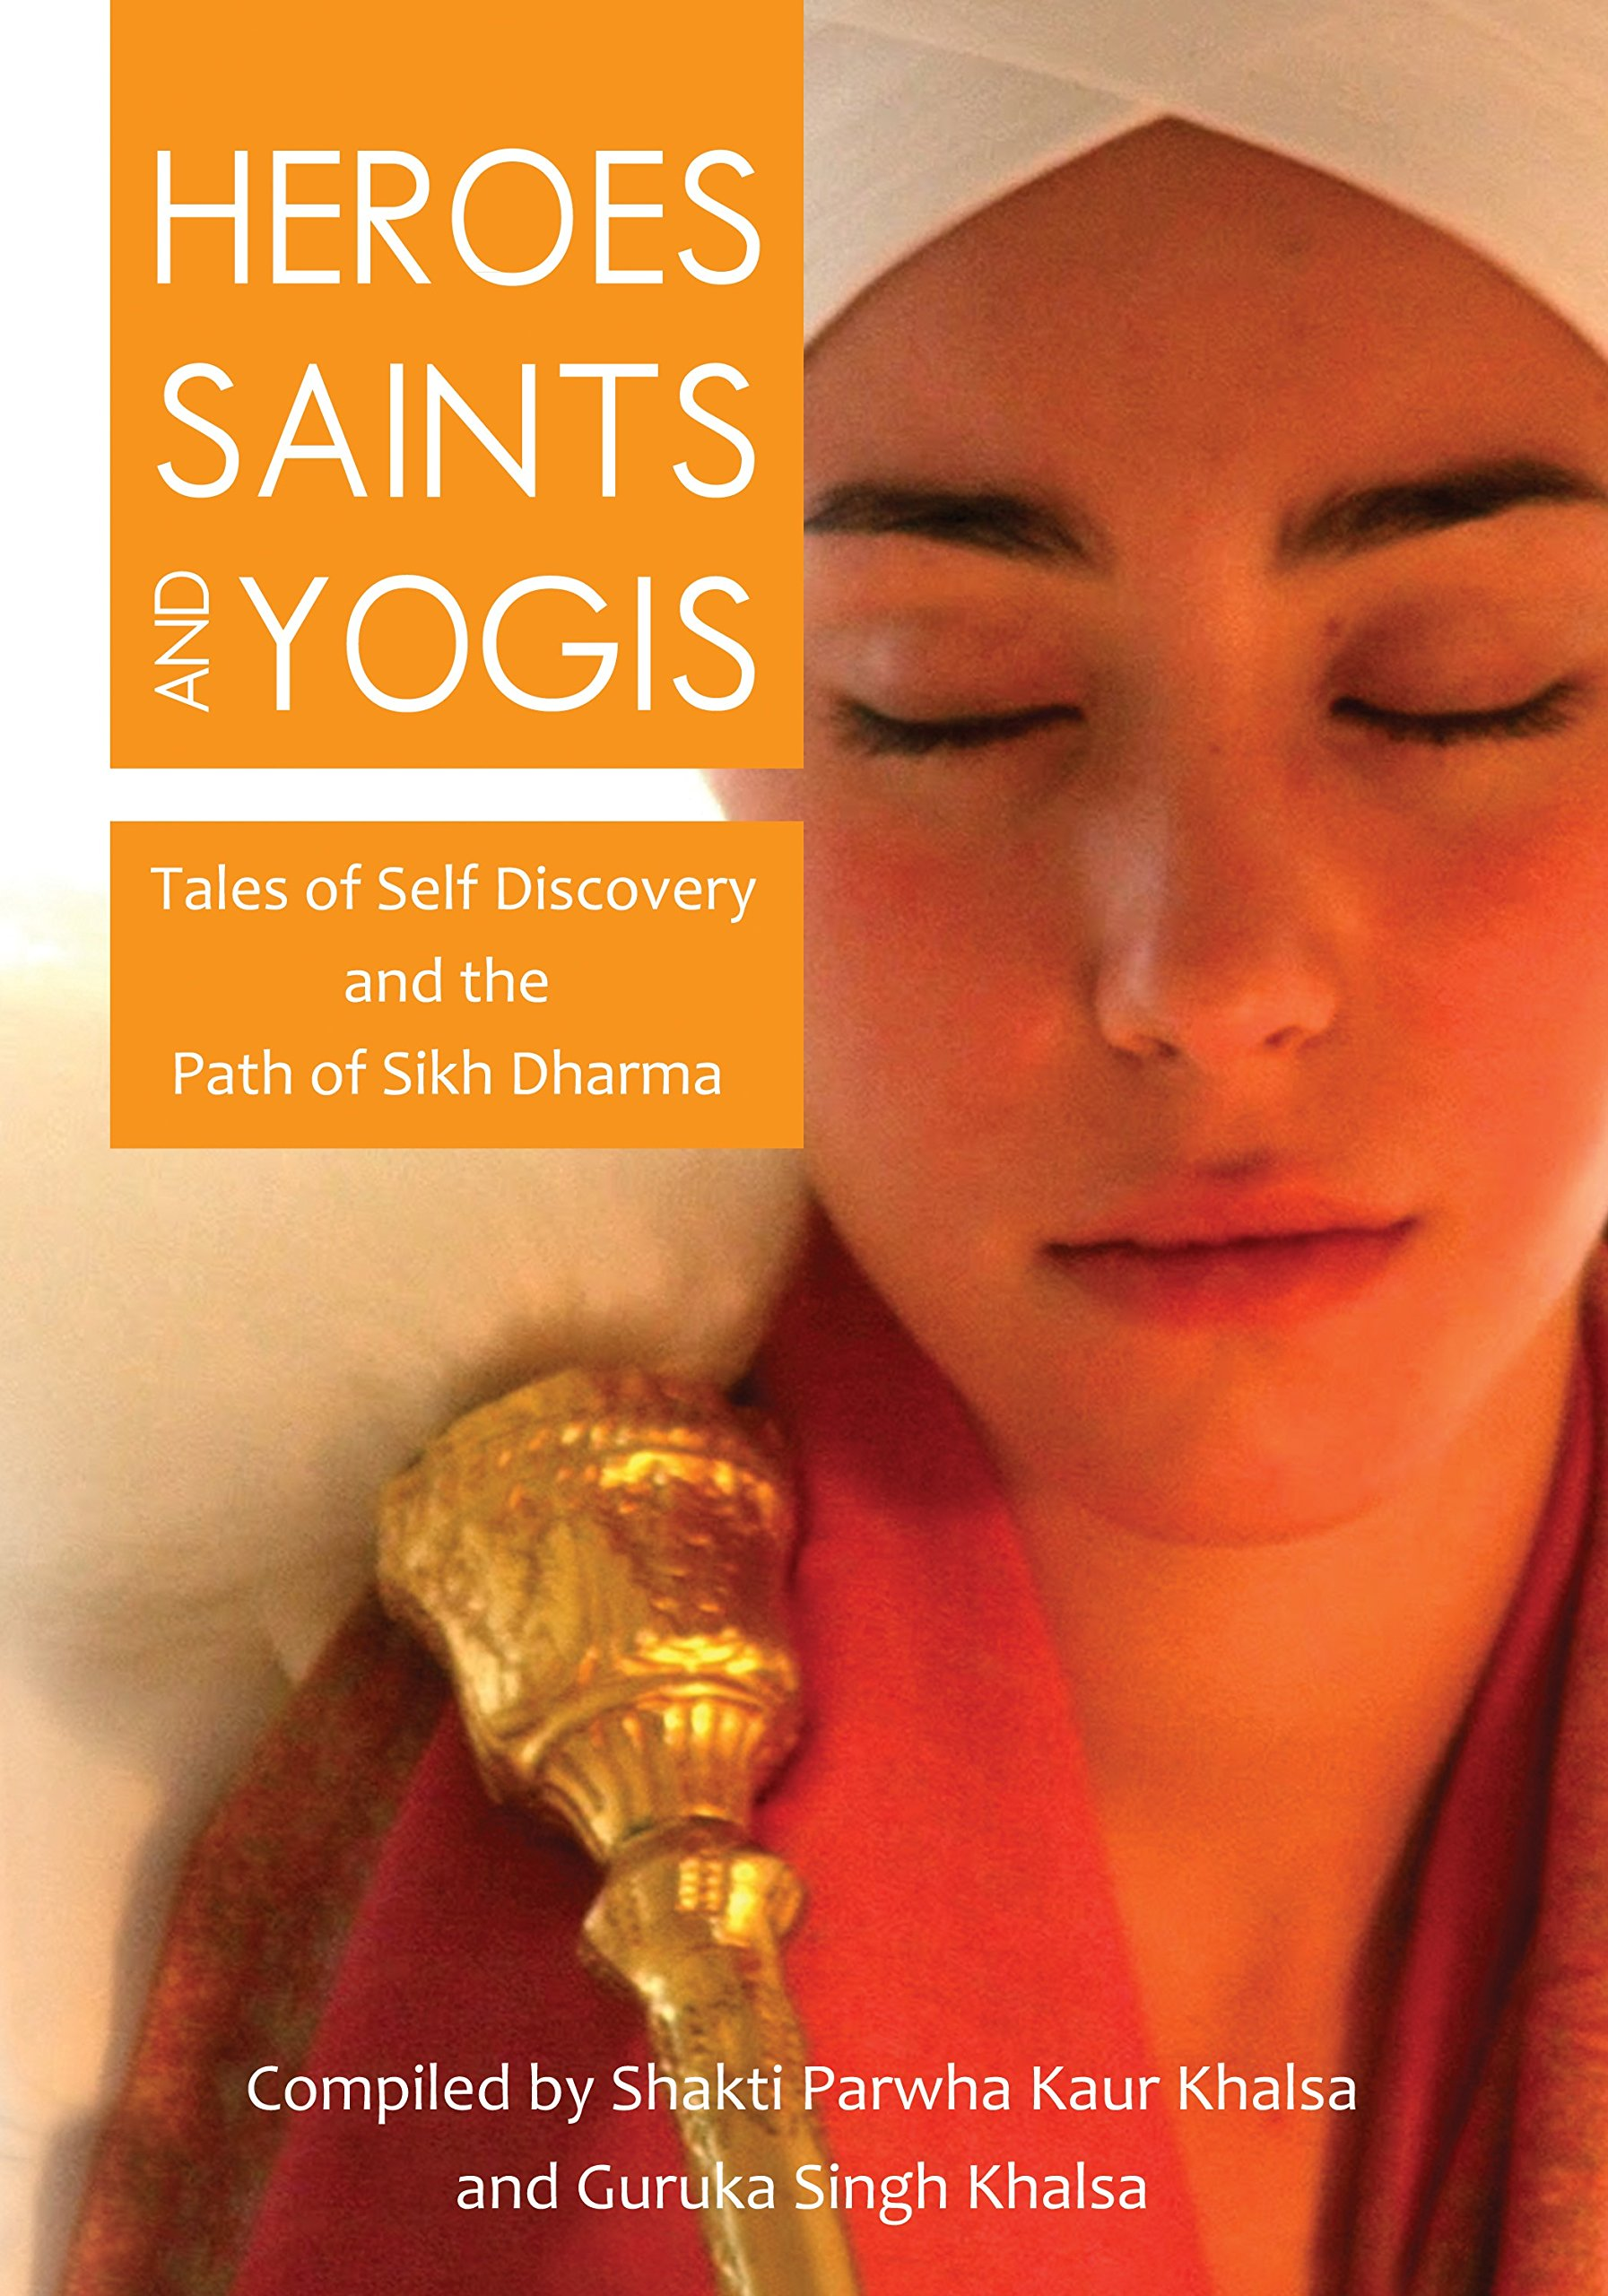 Heroes Saints And Yogis  Tales Of Self Discovery And The Path Of Sikh Dharma  English Edition